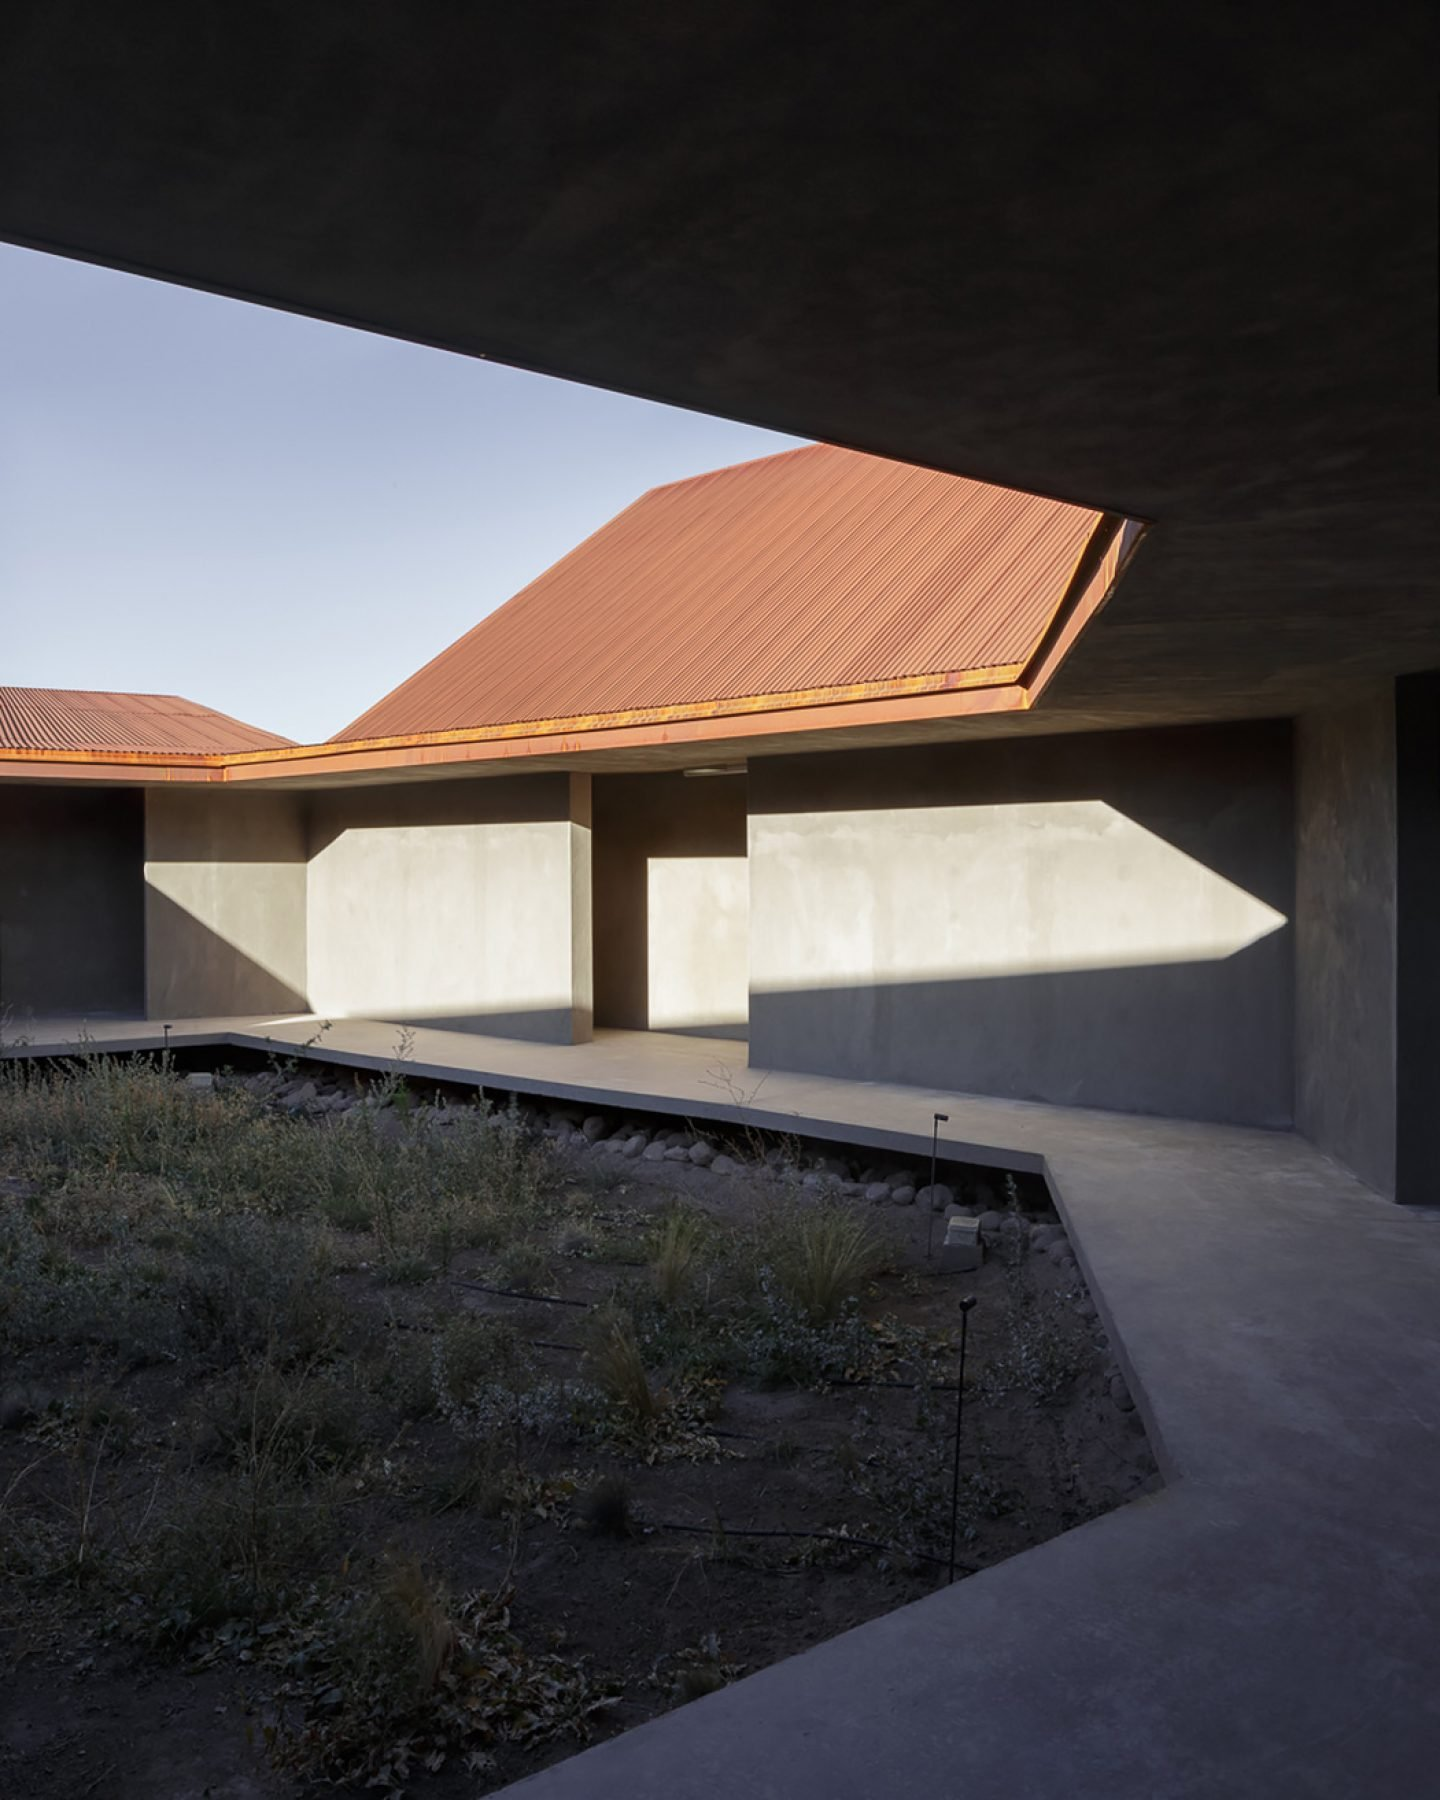 iGNANT-Architecture-Desert-Interpretation-Center-Emilio-Marin-Juan-Carlos-Lopez-11